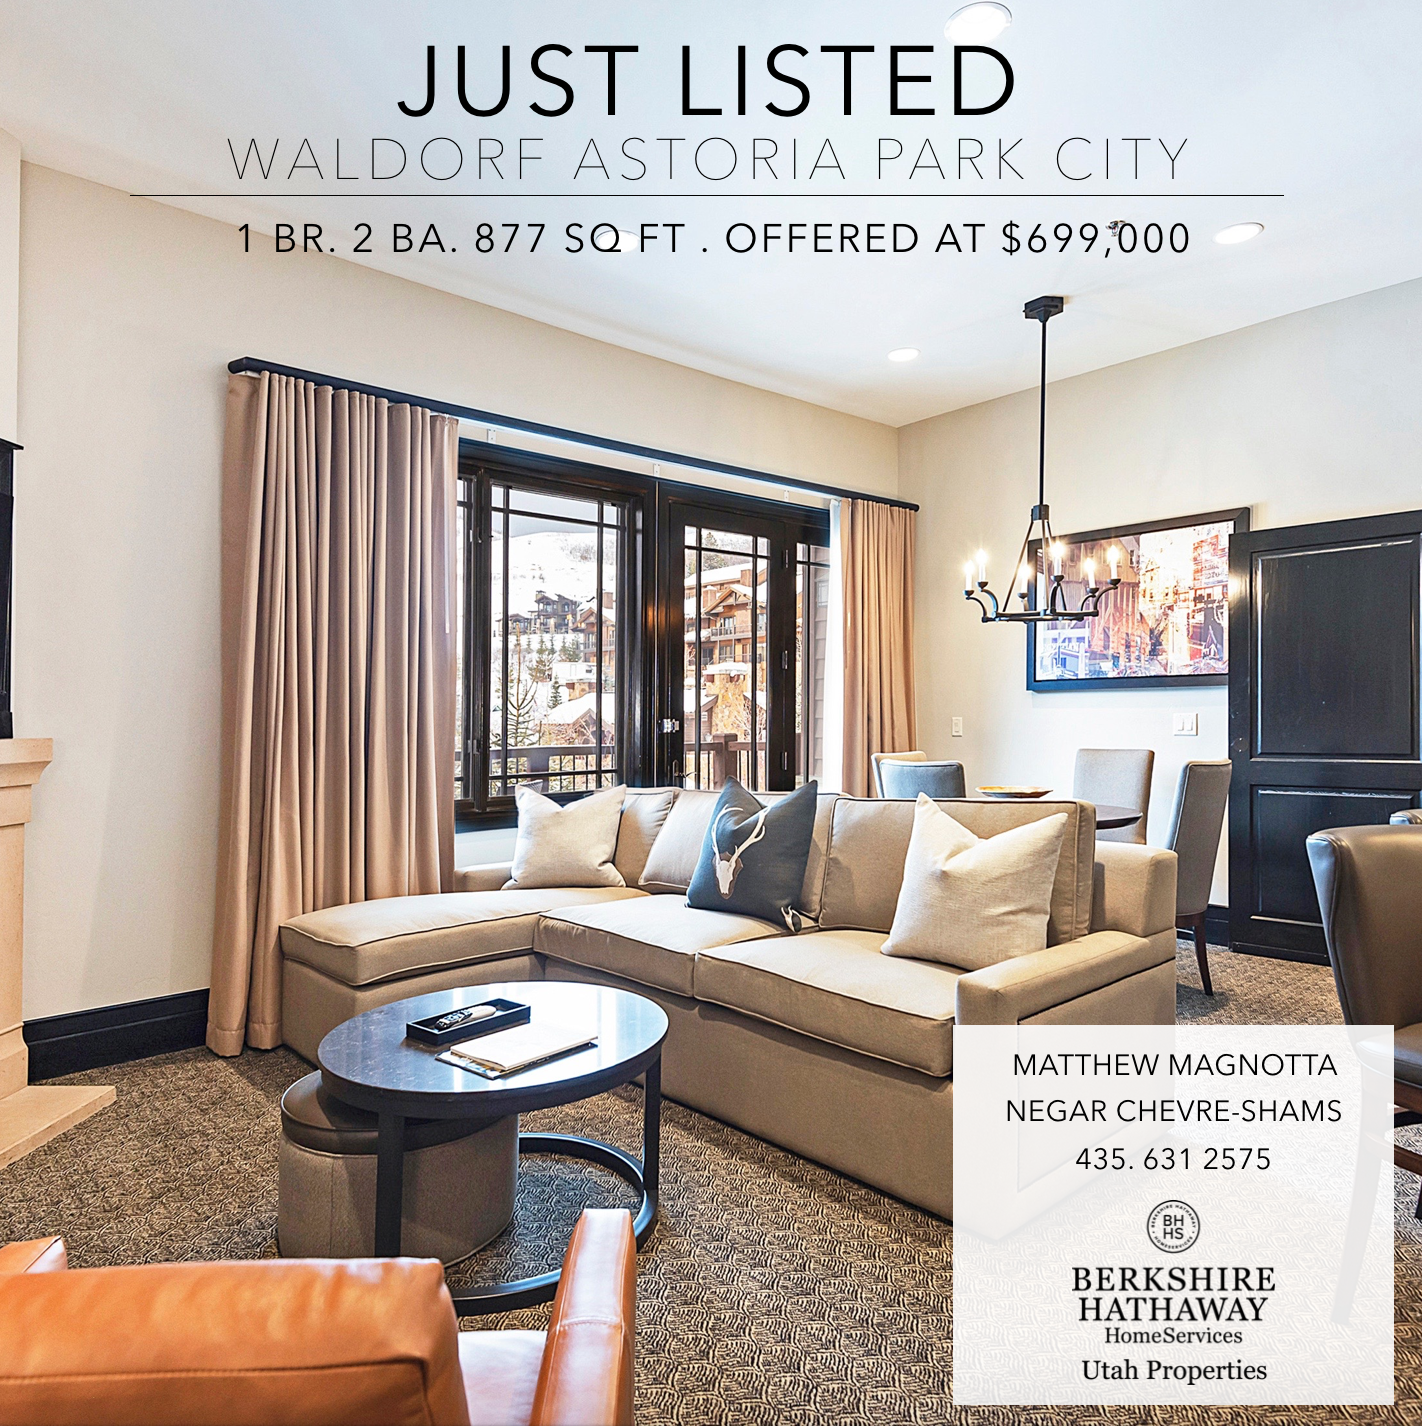 Waldorf Astoria Park City For Sale